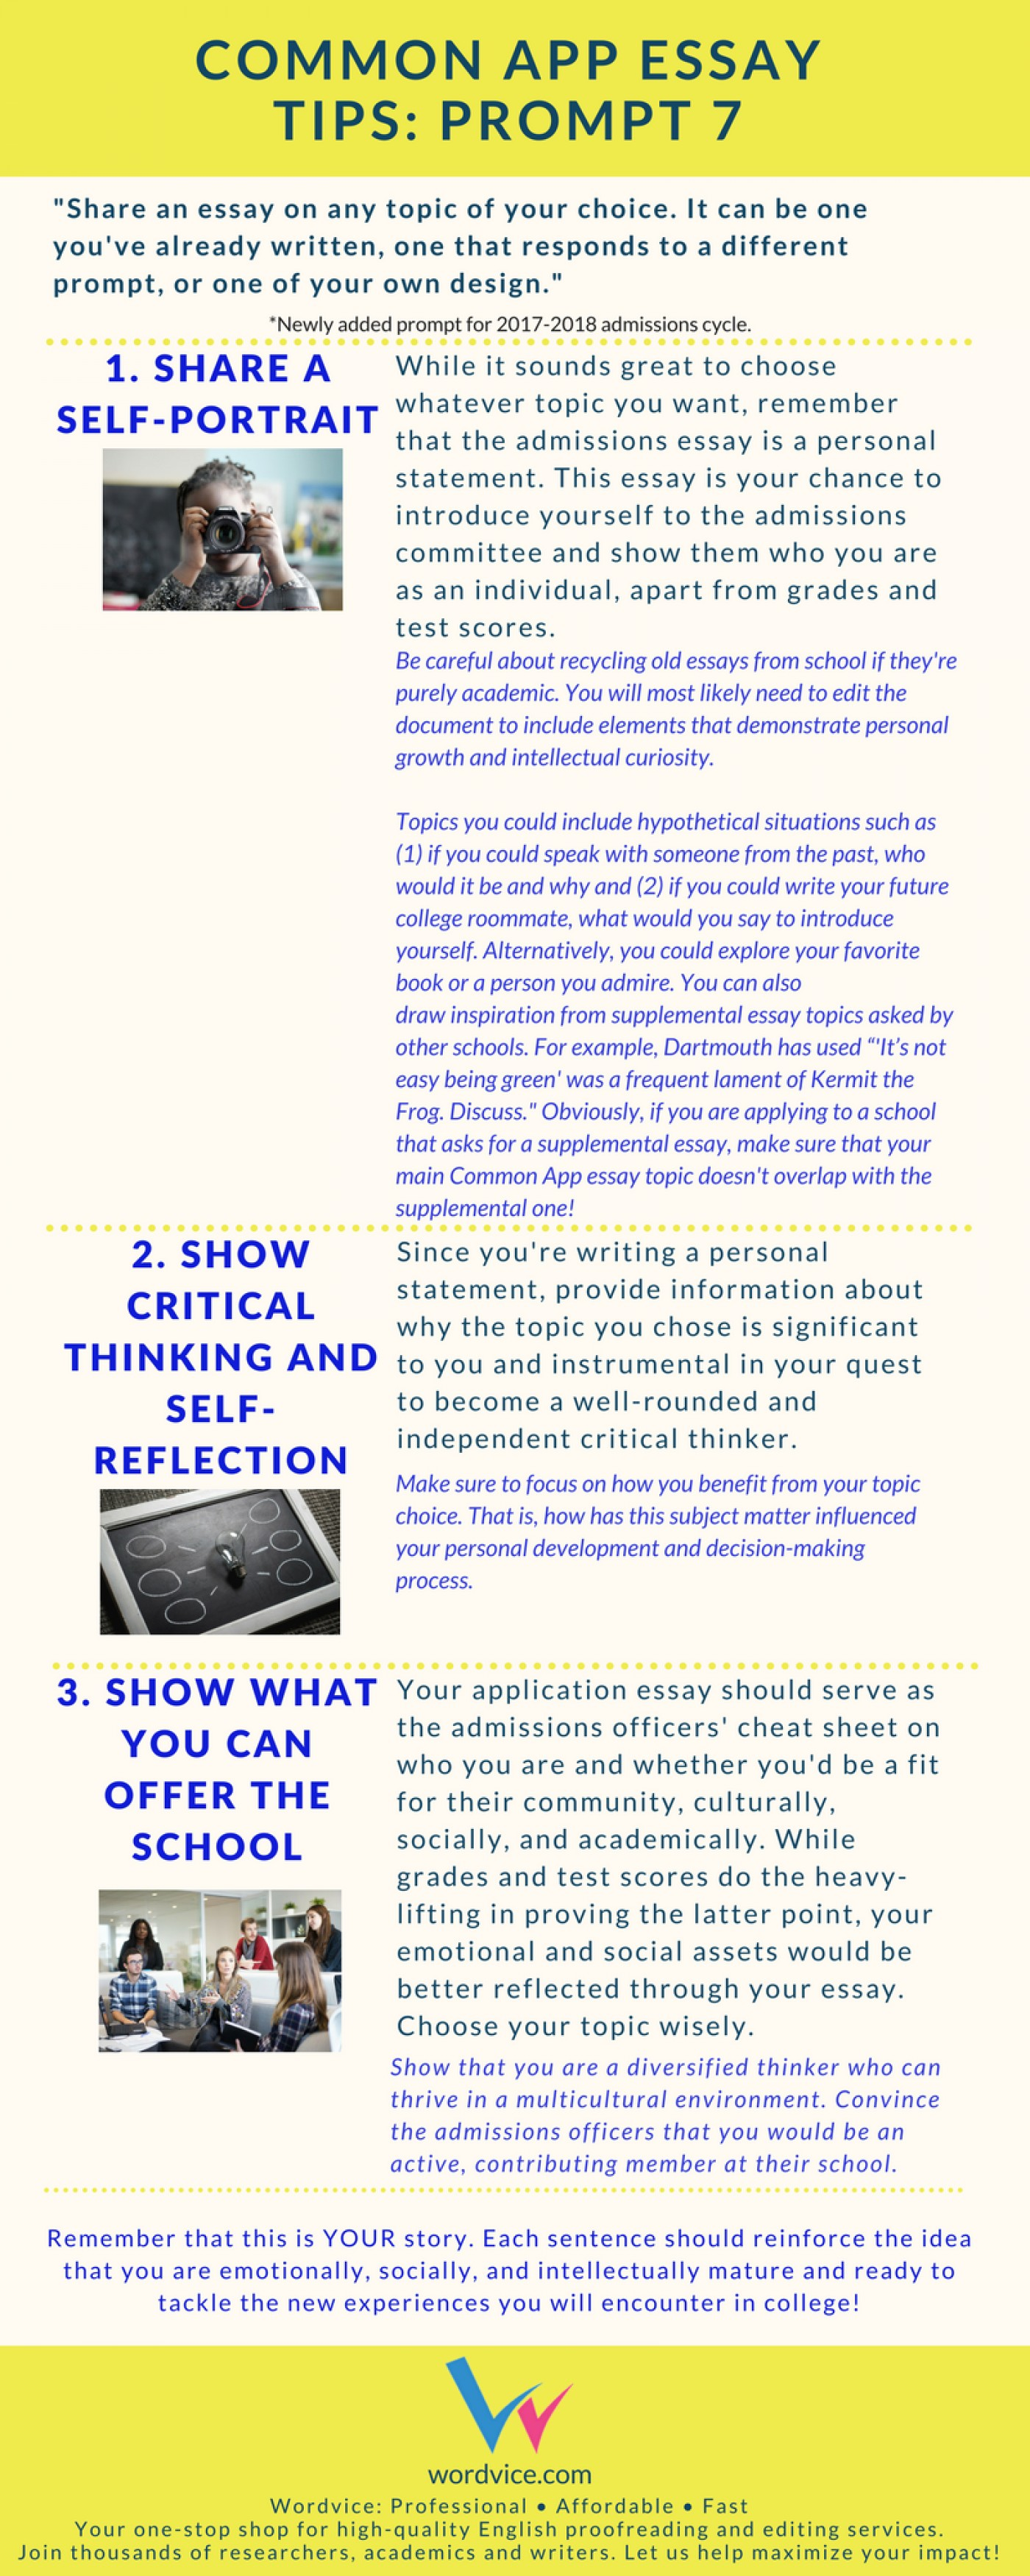 010 Common Application Essay Prompts Example App Brainstormprompt Best 2017 2017-18 A Guide Examples 1400